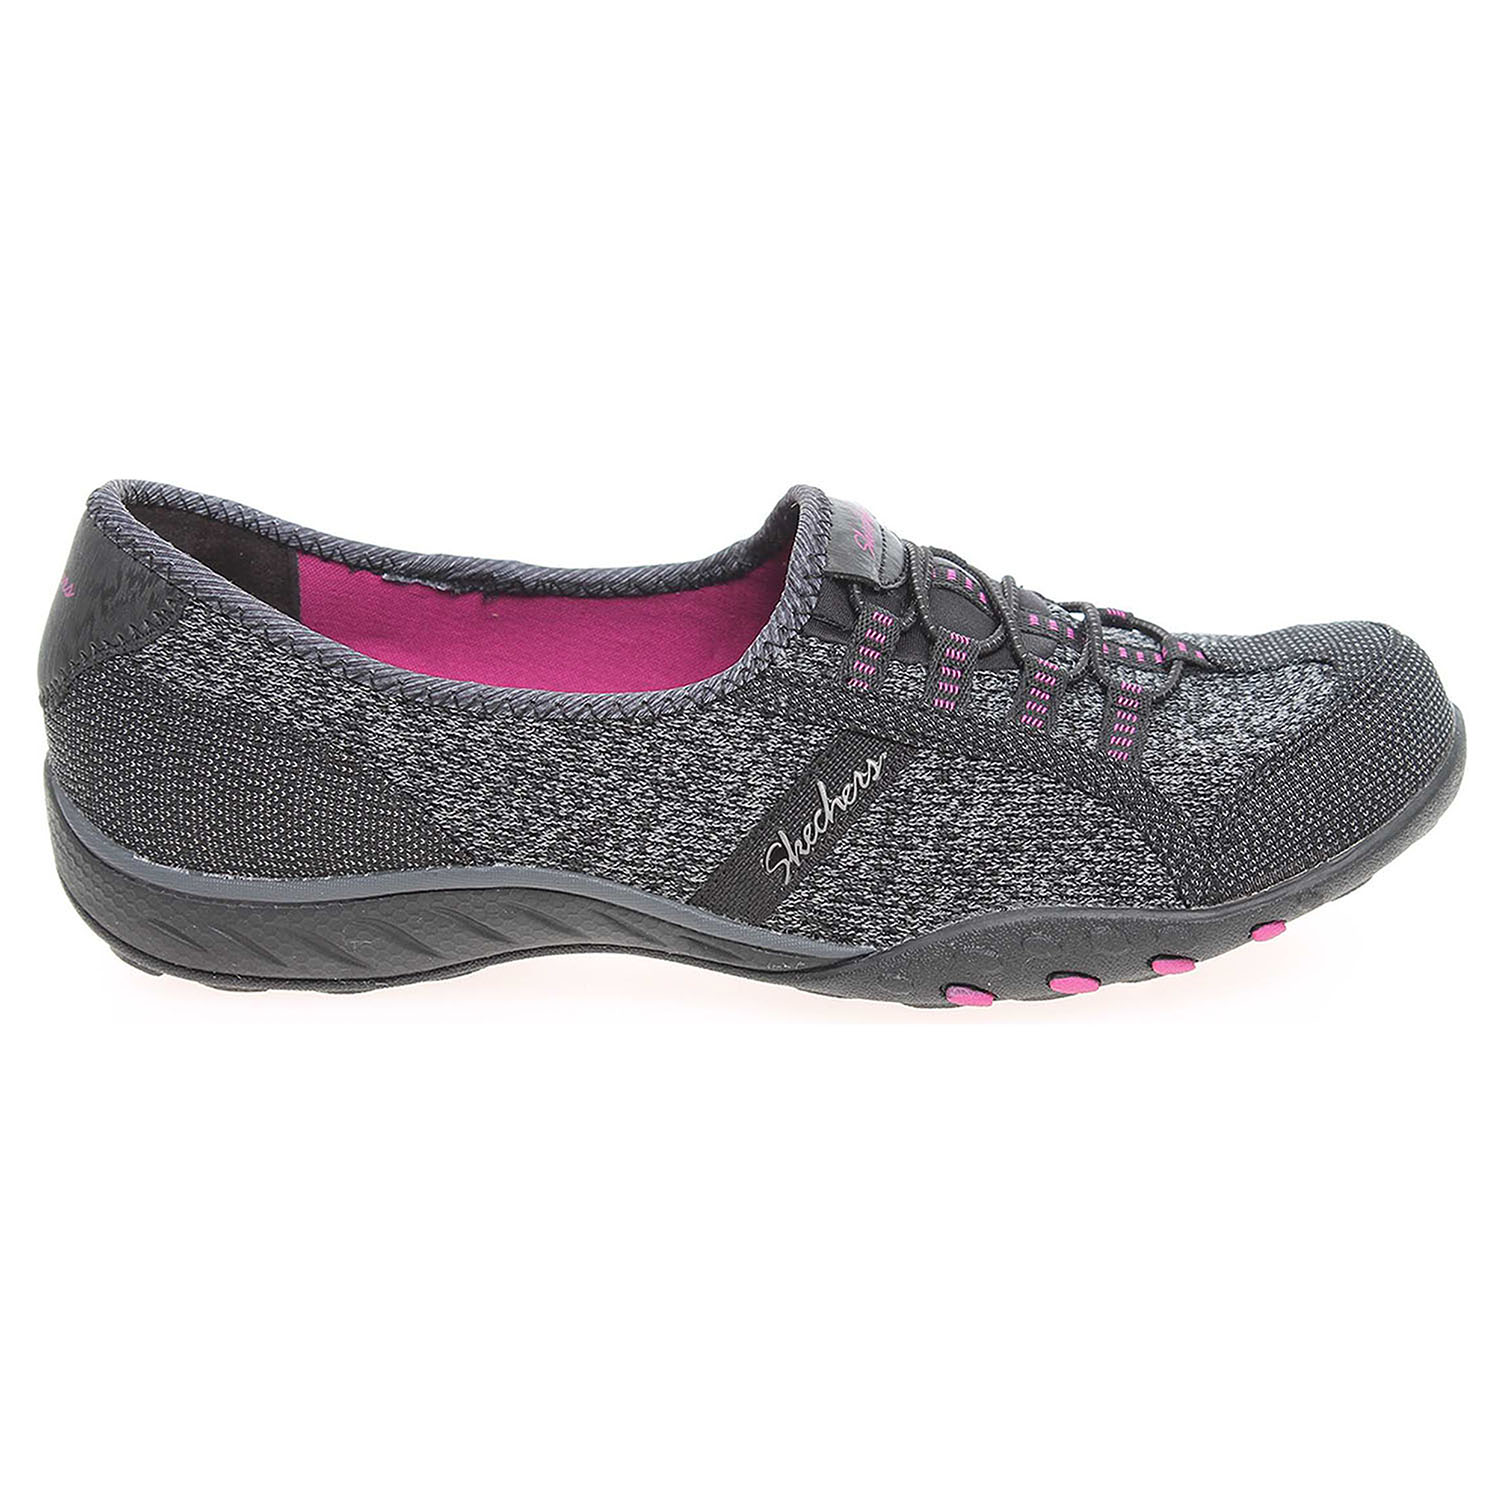 Skechers Save the Day black-pink